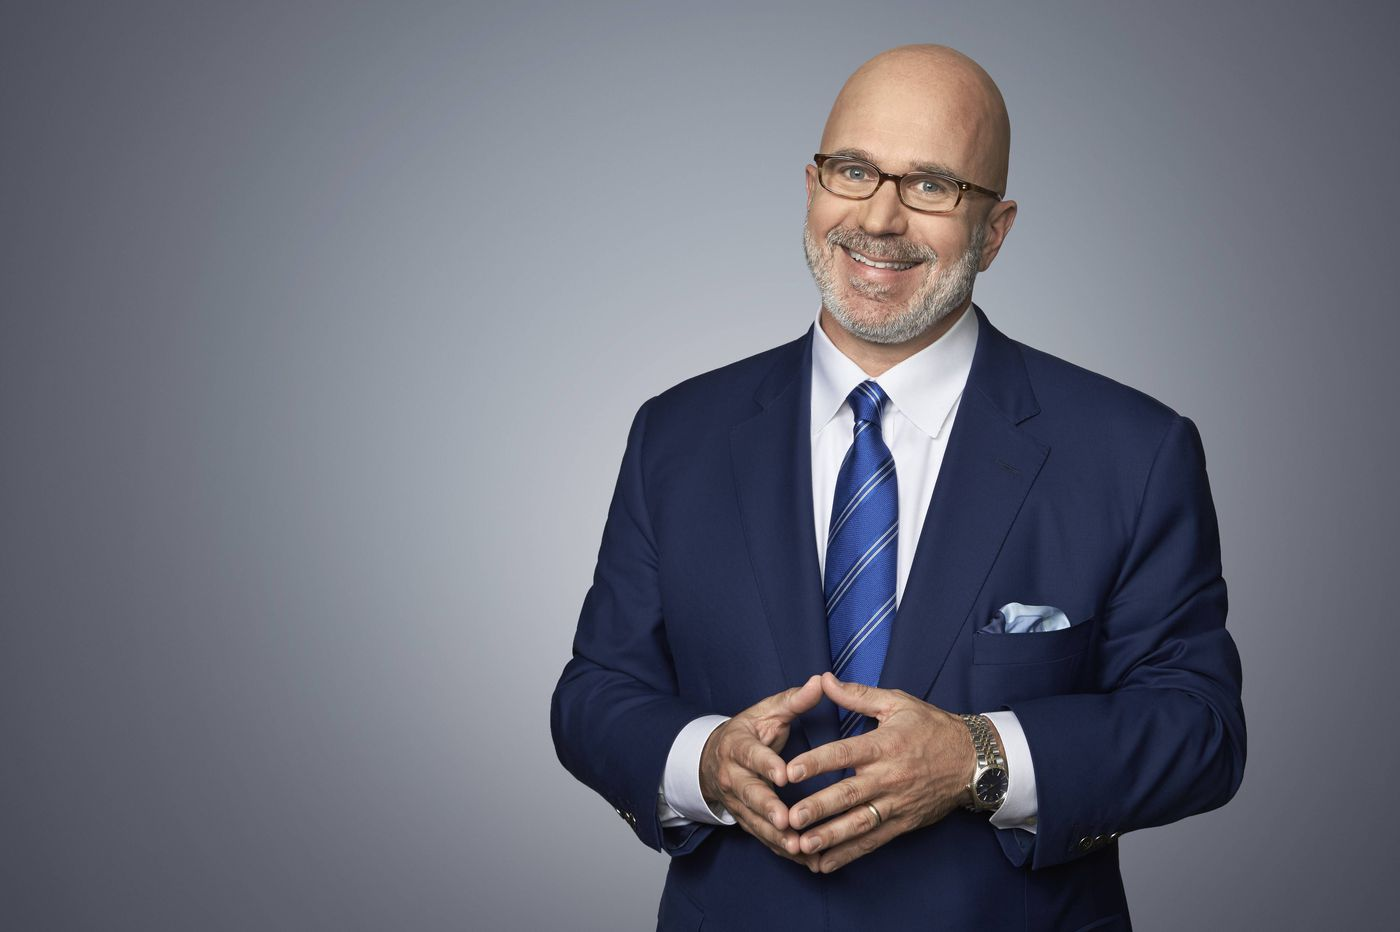 From Philly to CNN, what 30 years of talk radio taught Michael Smerconish